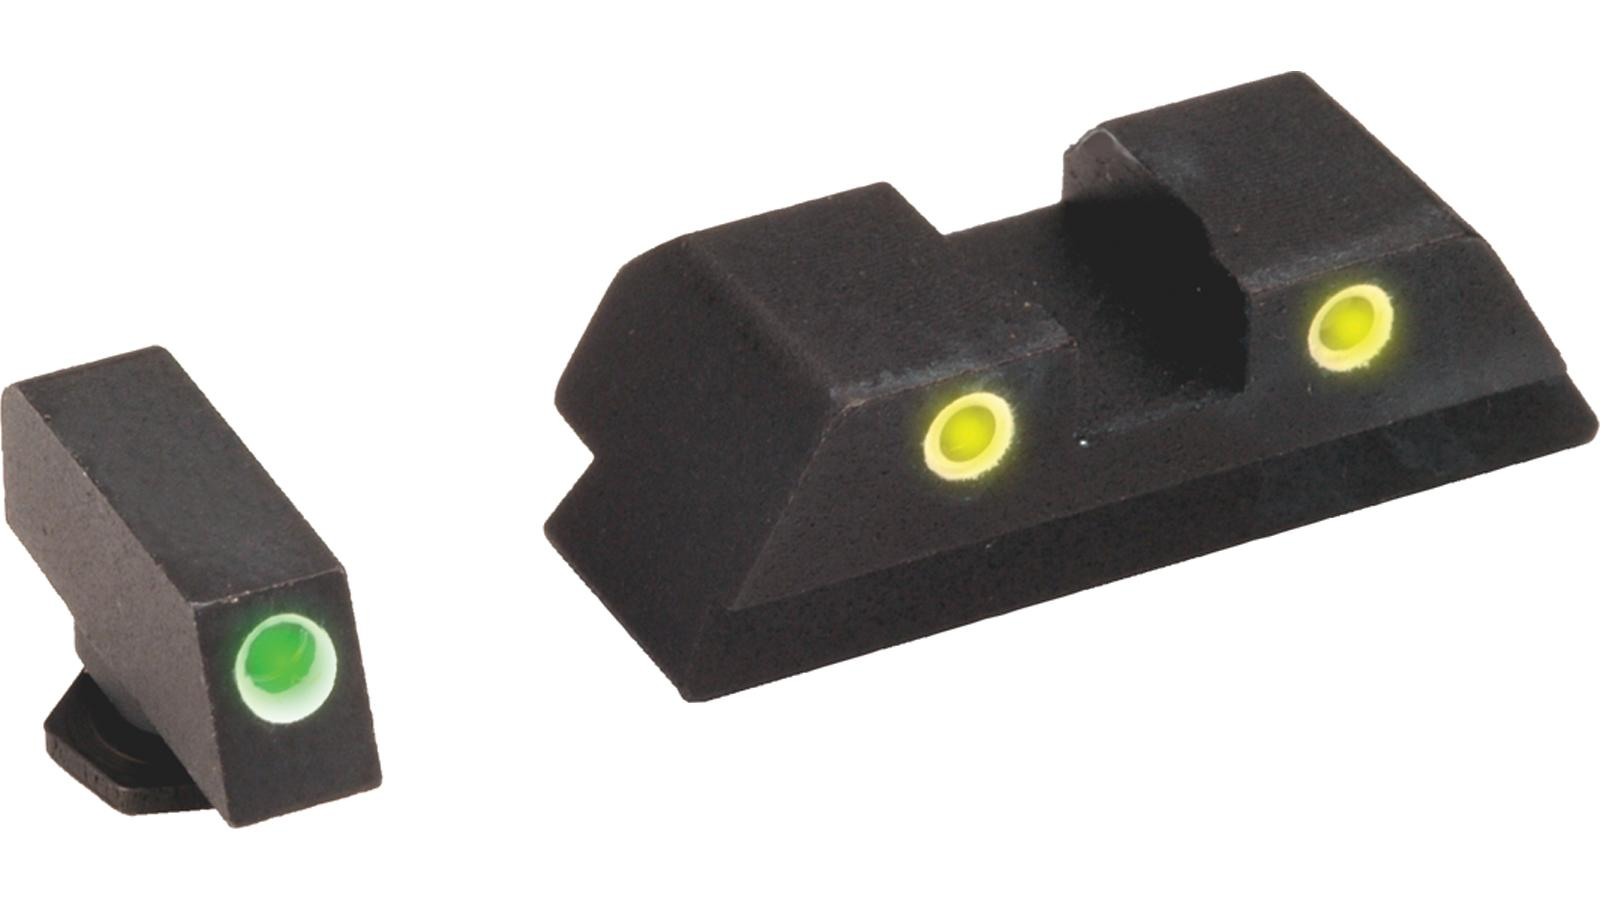 Ameriglo Gl5115 Classic 3 Dot Night Sight Glock 17/19/19x/26/34 Gen5 Green Tritium W/White Outline Yellow W/White Outline Black